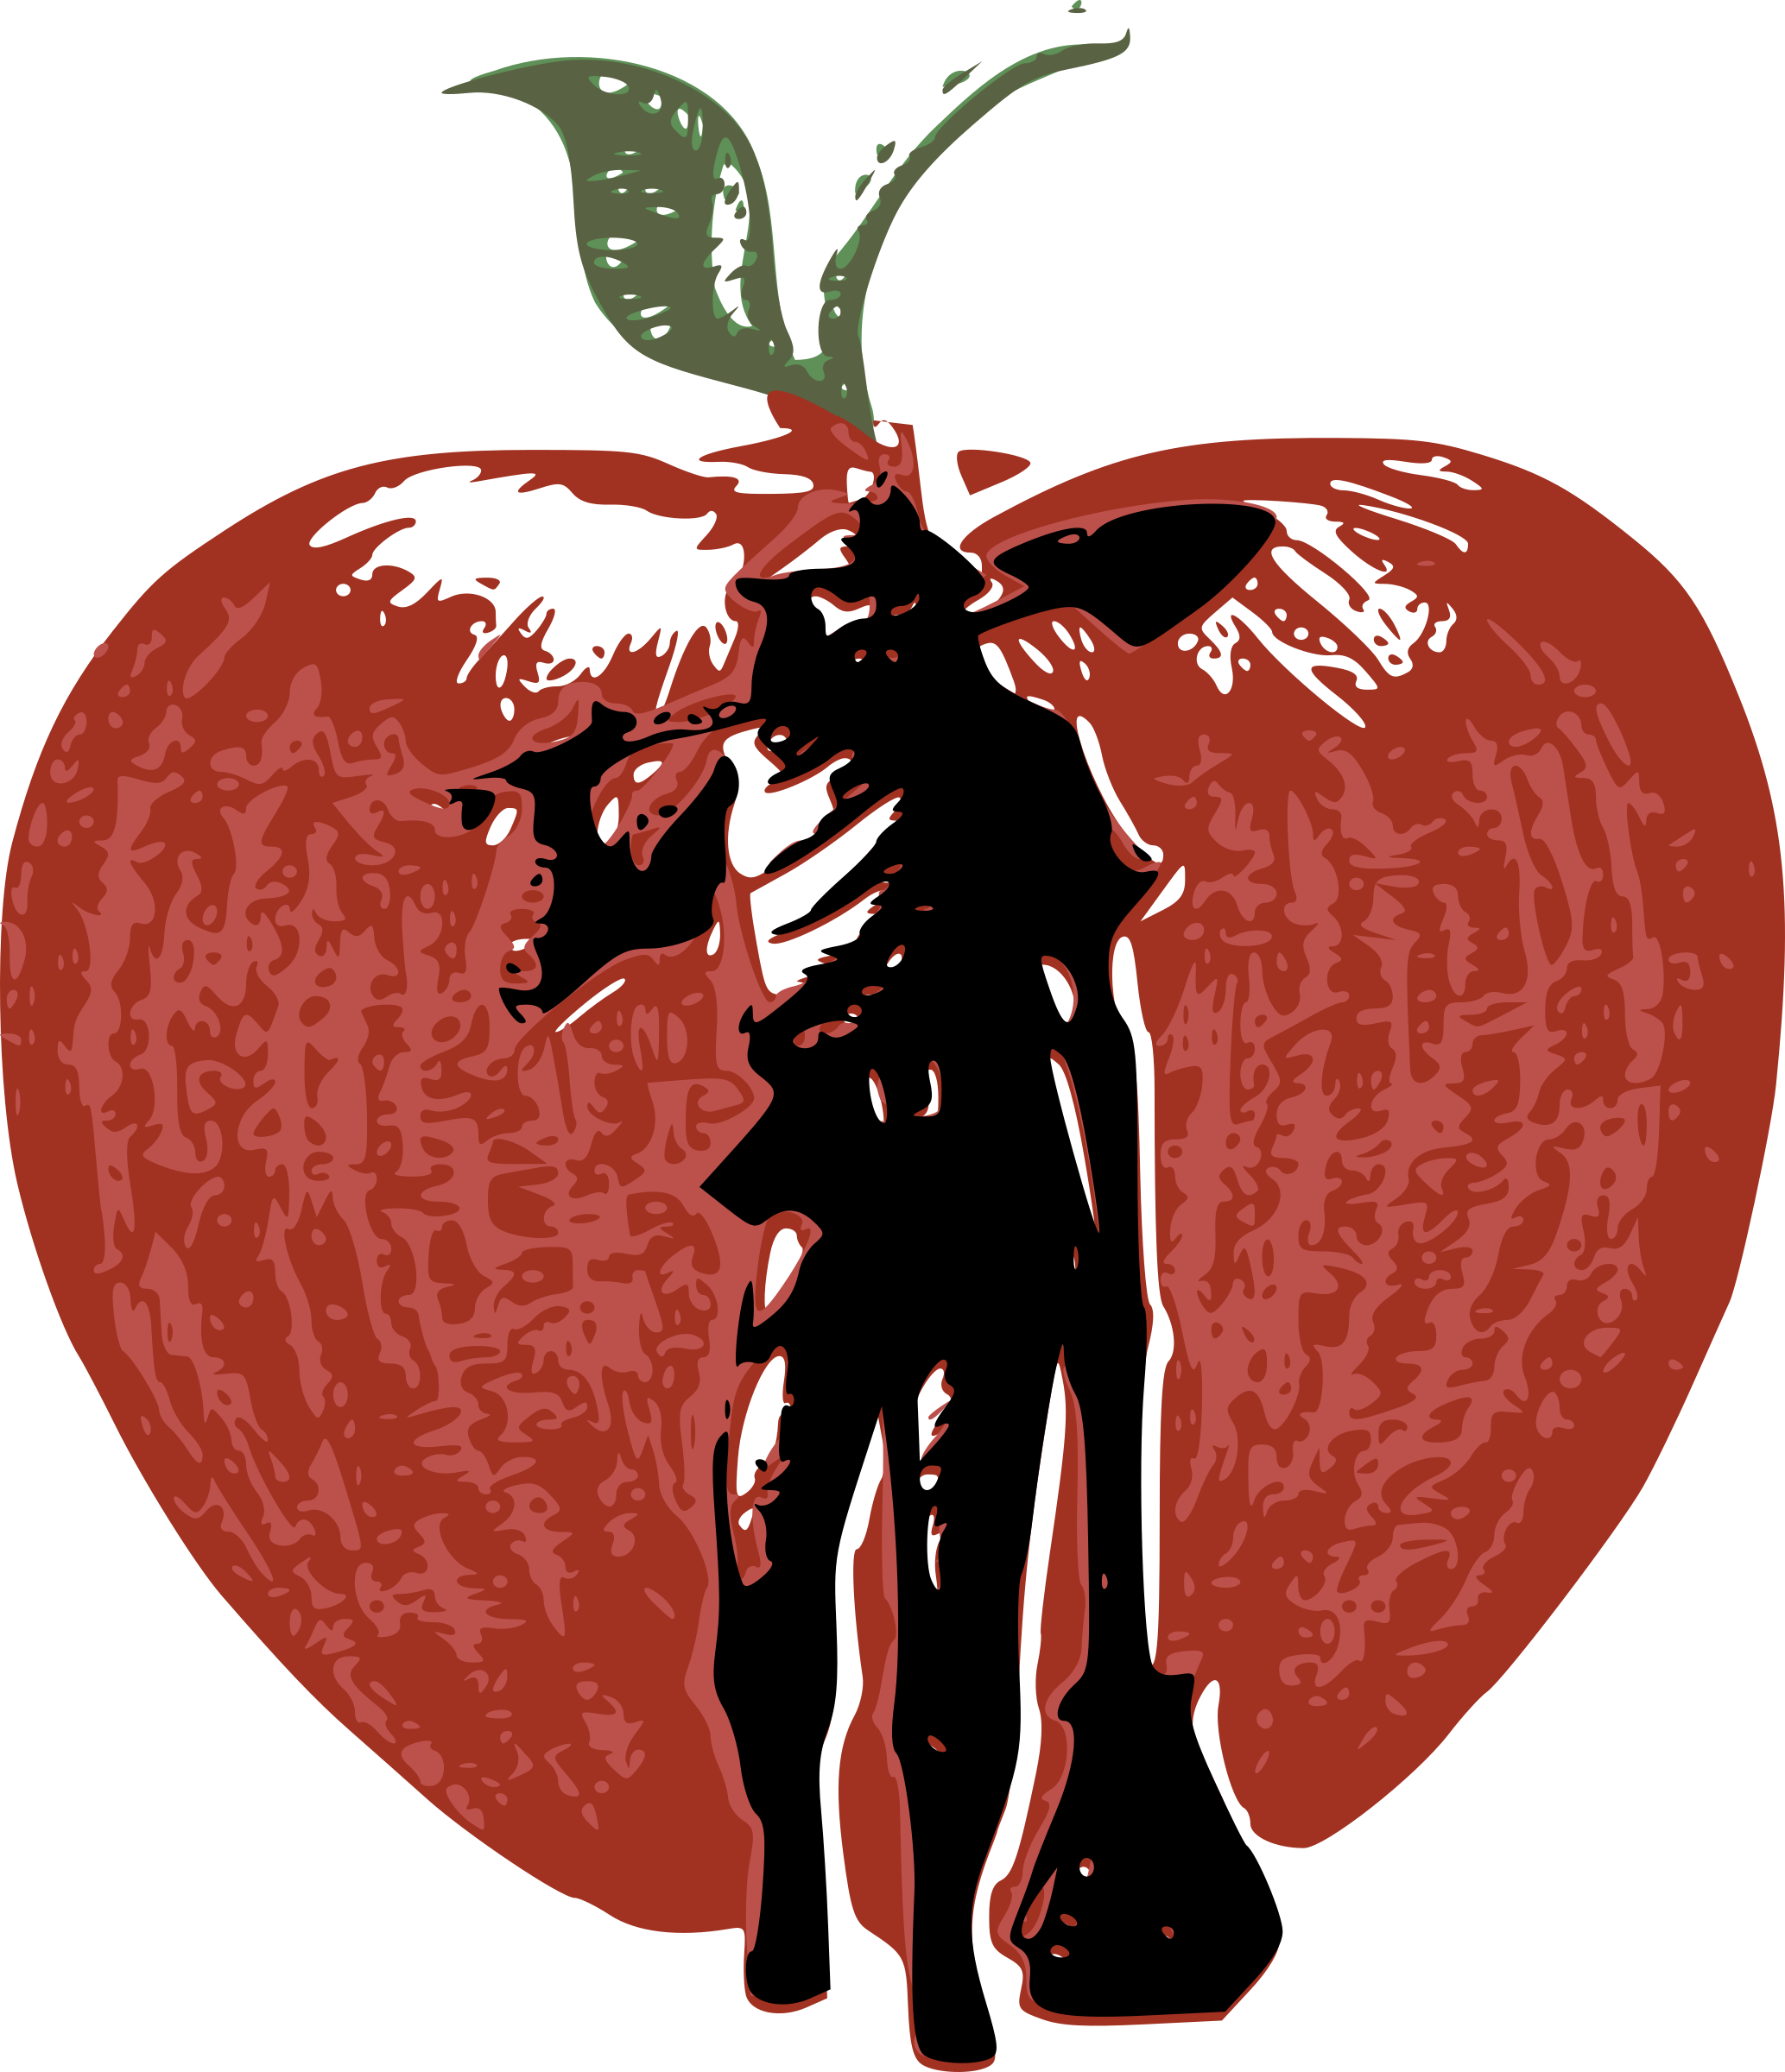 clipart johnny appleseed rh openclipart org Johnny Appleseed Story Online Interactive johnny appleseed clipart black and white